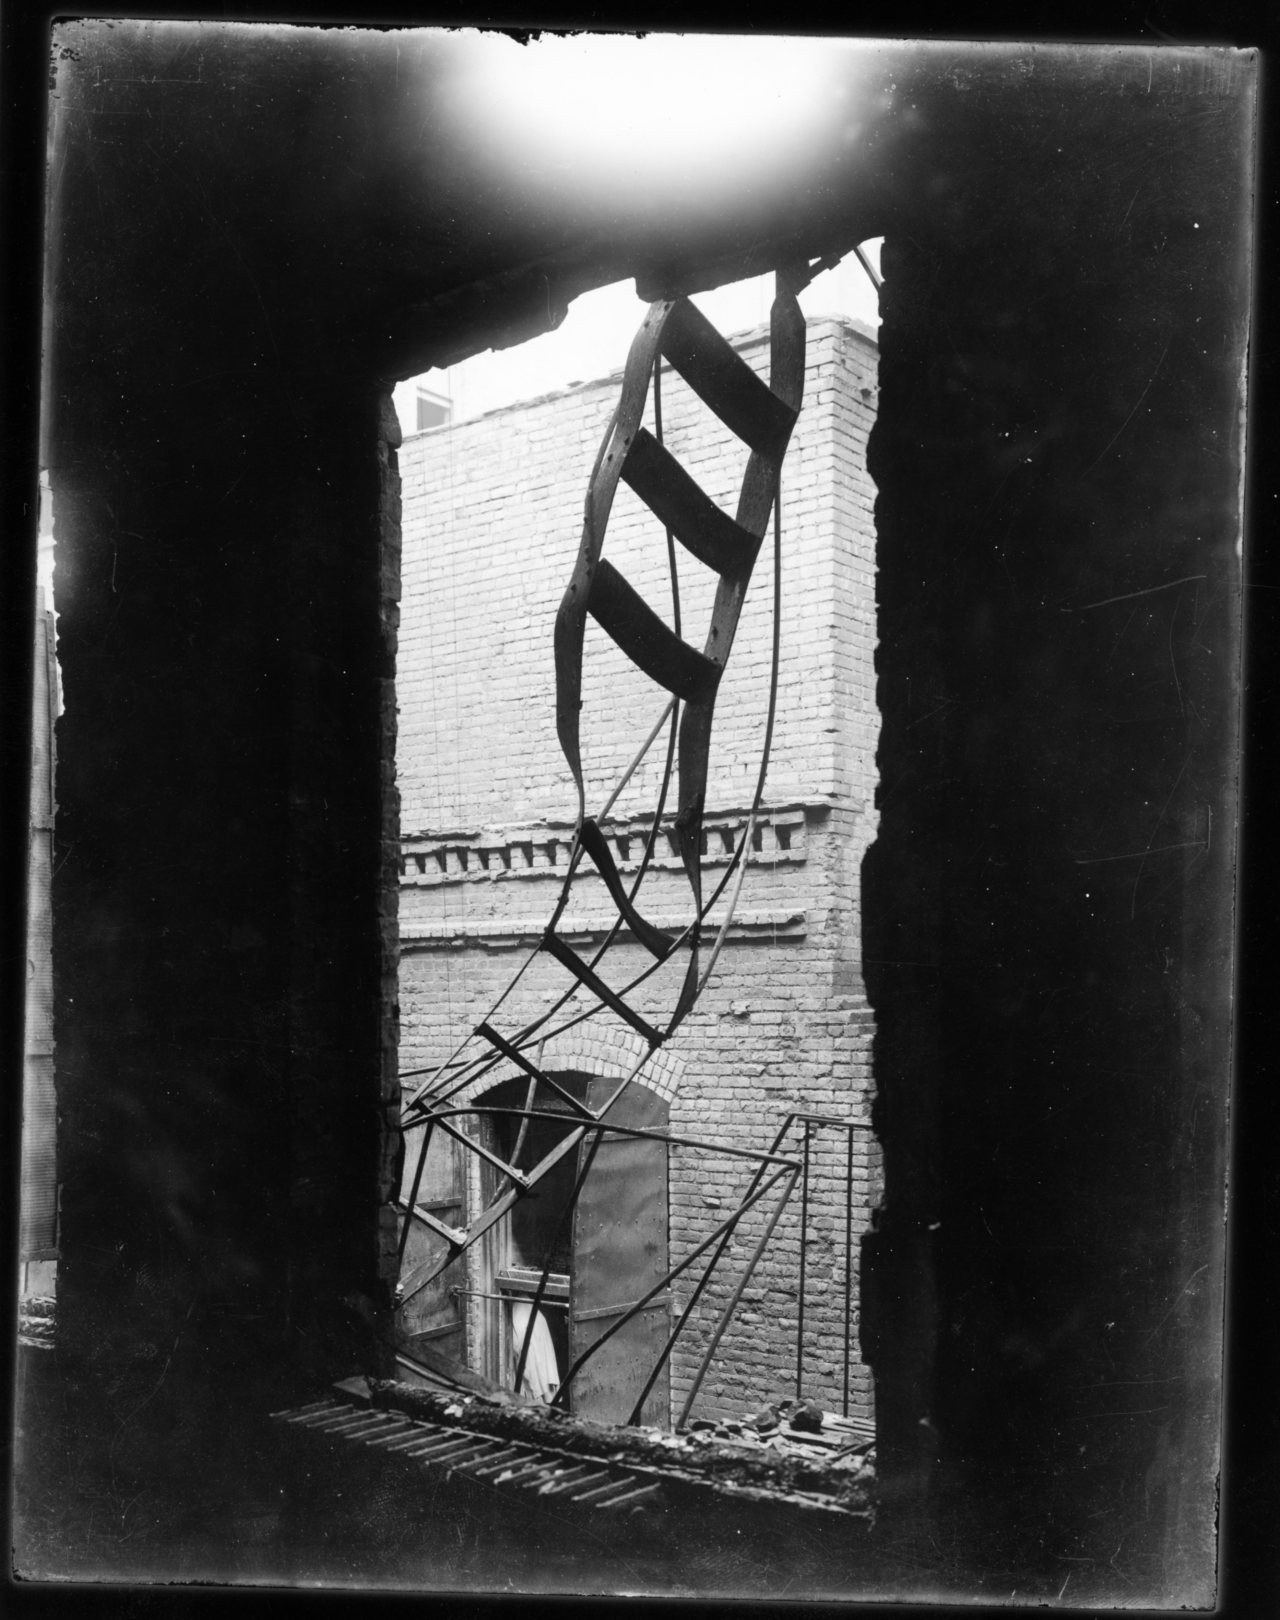 todaysdocument:   Photograph of a Broken Fire Escape after the Triangle Shirtwaist Factory Fire, 03/25/1911  One of the deadliest industrial disasters in United States history, the Triangle Shirtwaist Factory fire in New York City left 146 workers dead in 18 minutes on March 25, 1911.   Locked doors kept the workers from escaping; there was not enough water to put out the flames, and firemen's ladders were too short to reach the upper stories. Many of the young women and men working there leapt out the windows and fell to their deaths onto the sidewalk outside. Others were crushed in the elevator shaft or when the fire escape collapsed. The fire led to sweeping reforms in labor laws and safety standards, providing a boost to labor unions, and was a pivotal event in the career of future labor secretary Frances Perkins. (Last year's post has additional photos of the fire and the victims, a few may be considered graphic.) via Prologue: A Factory Fire and Frances Perkins